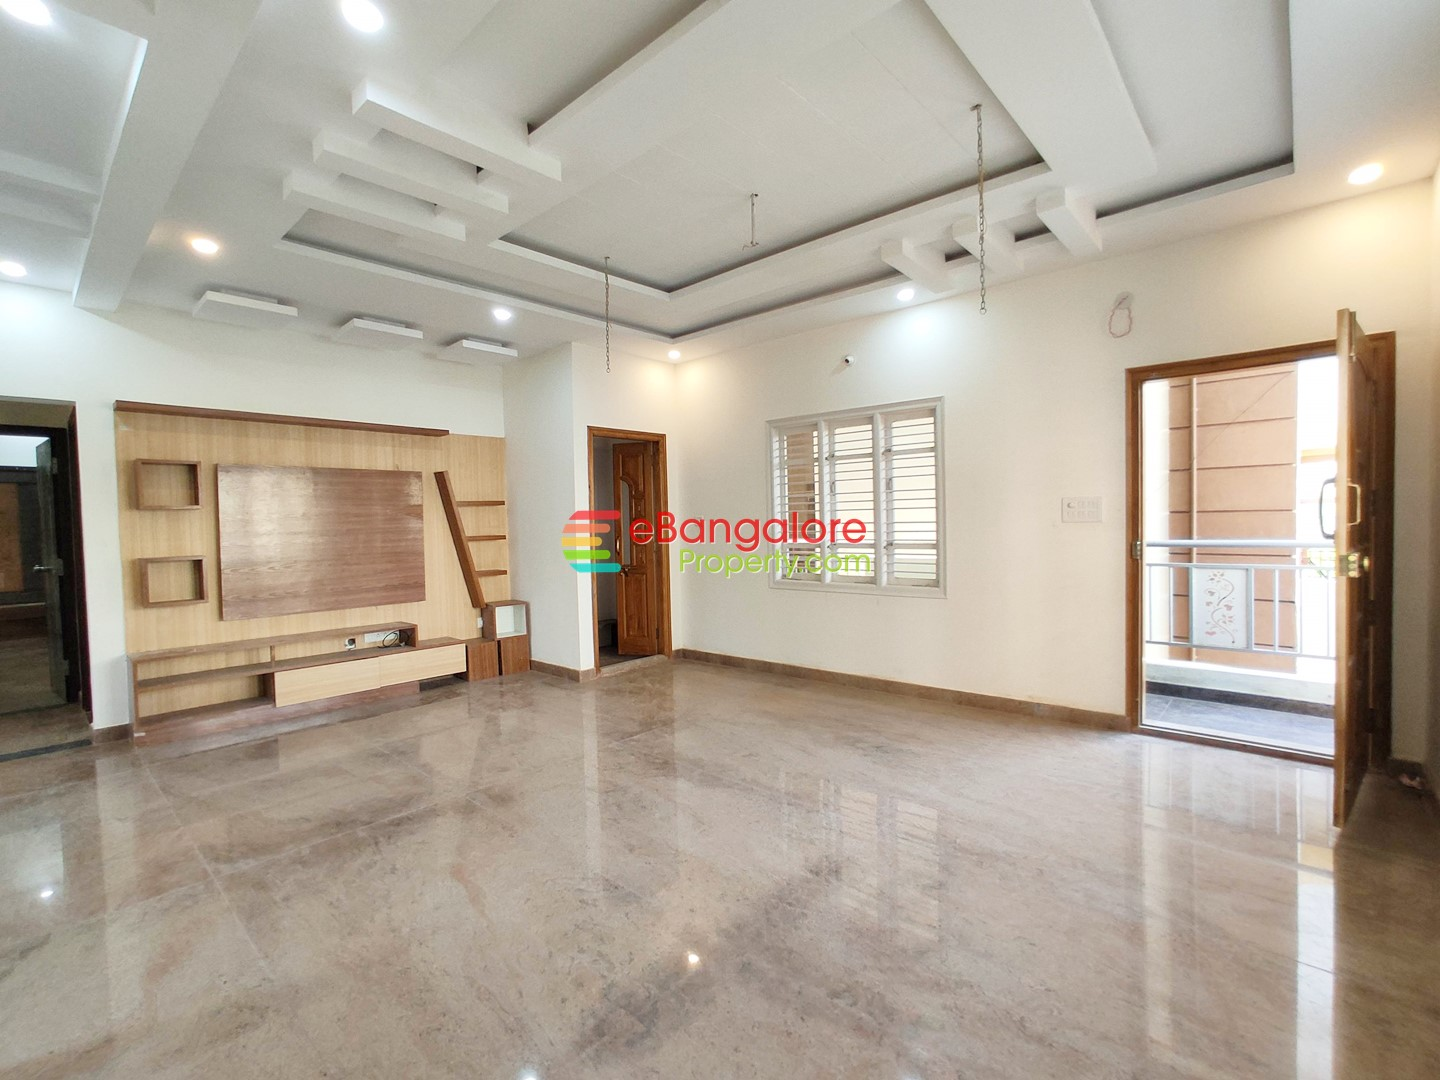 JP Nagar BLR14- 7 Unit Building For Sale on 30×40 – BDA Property